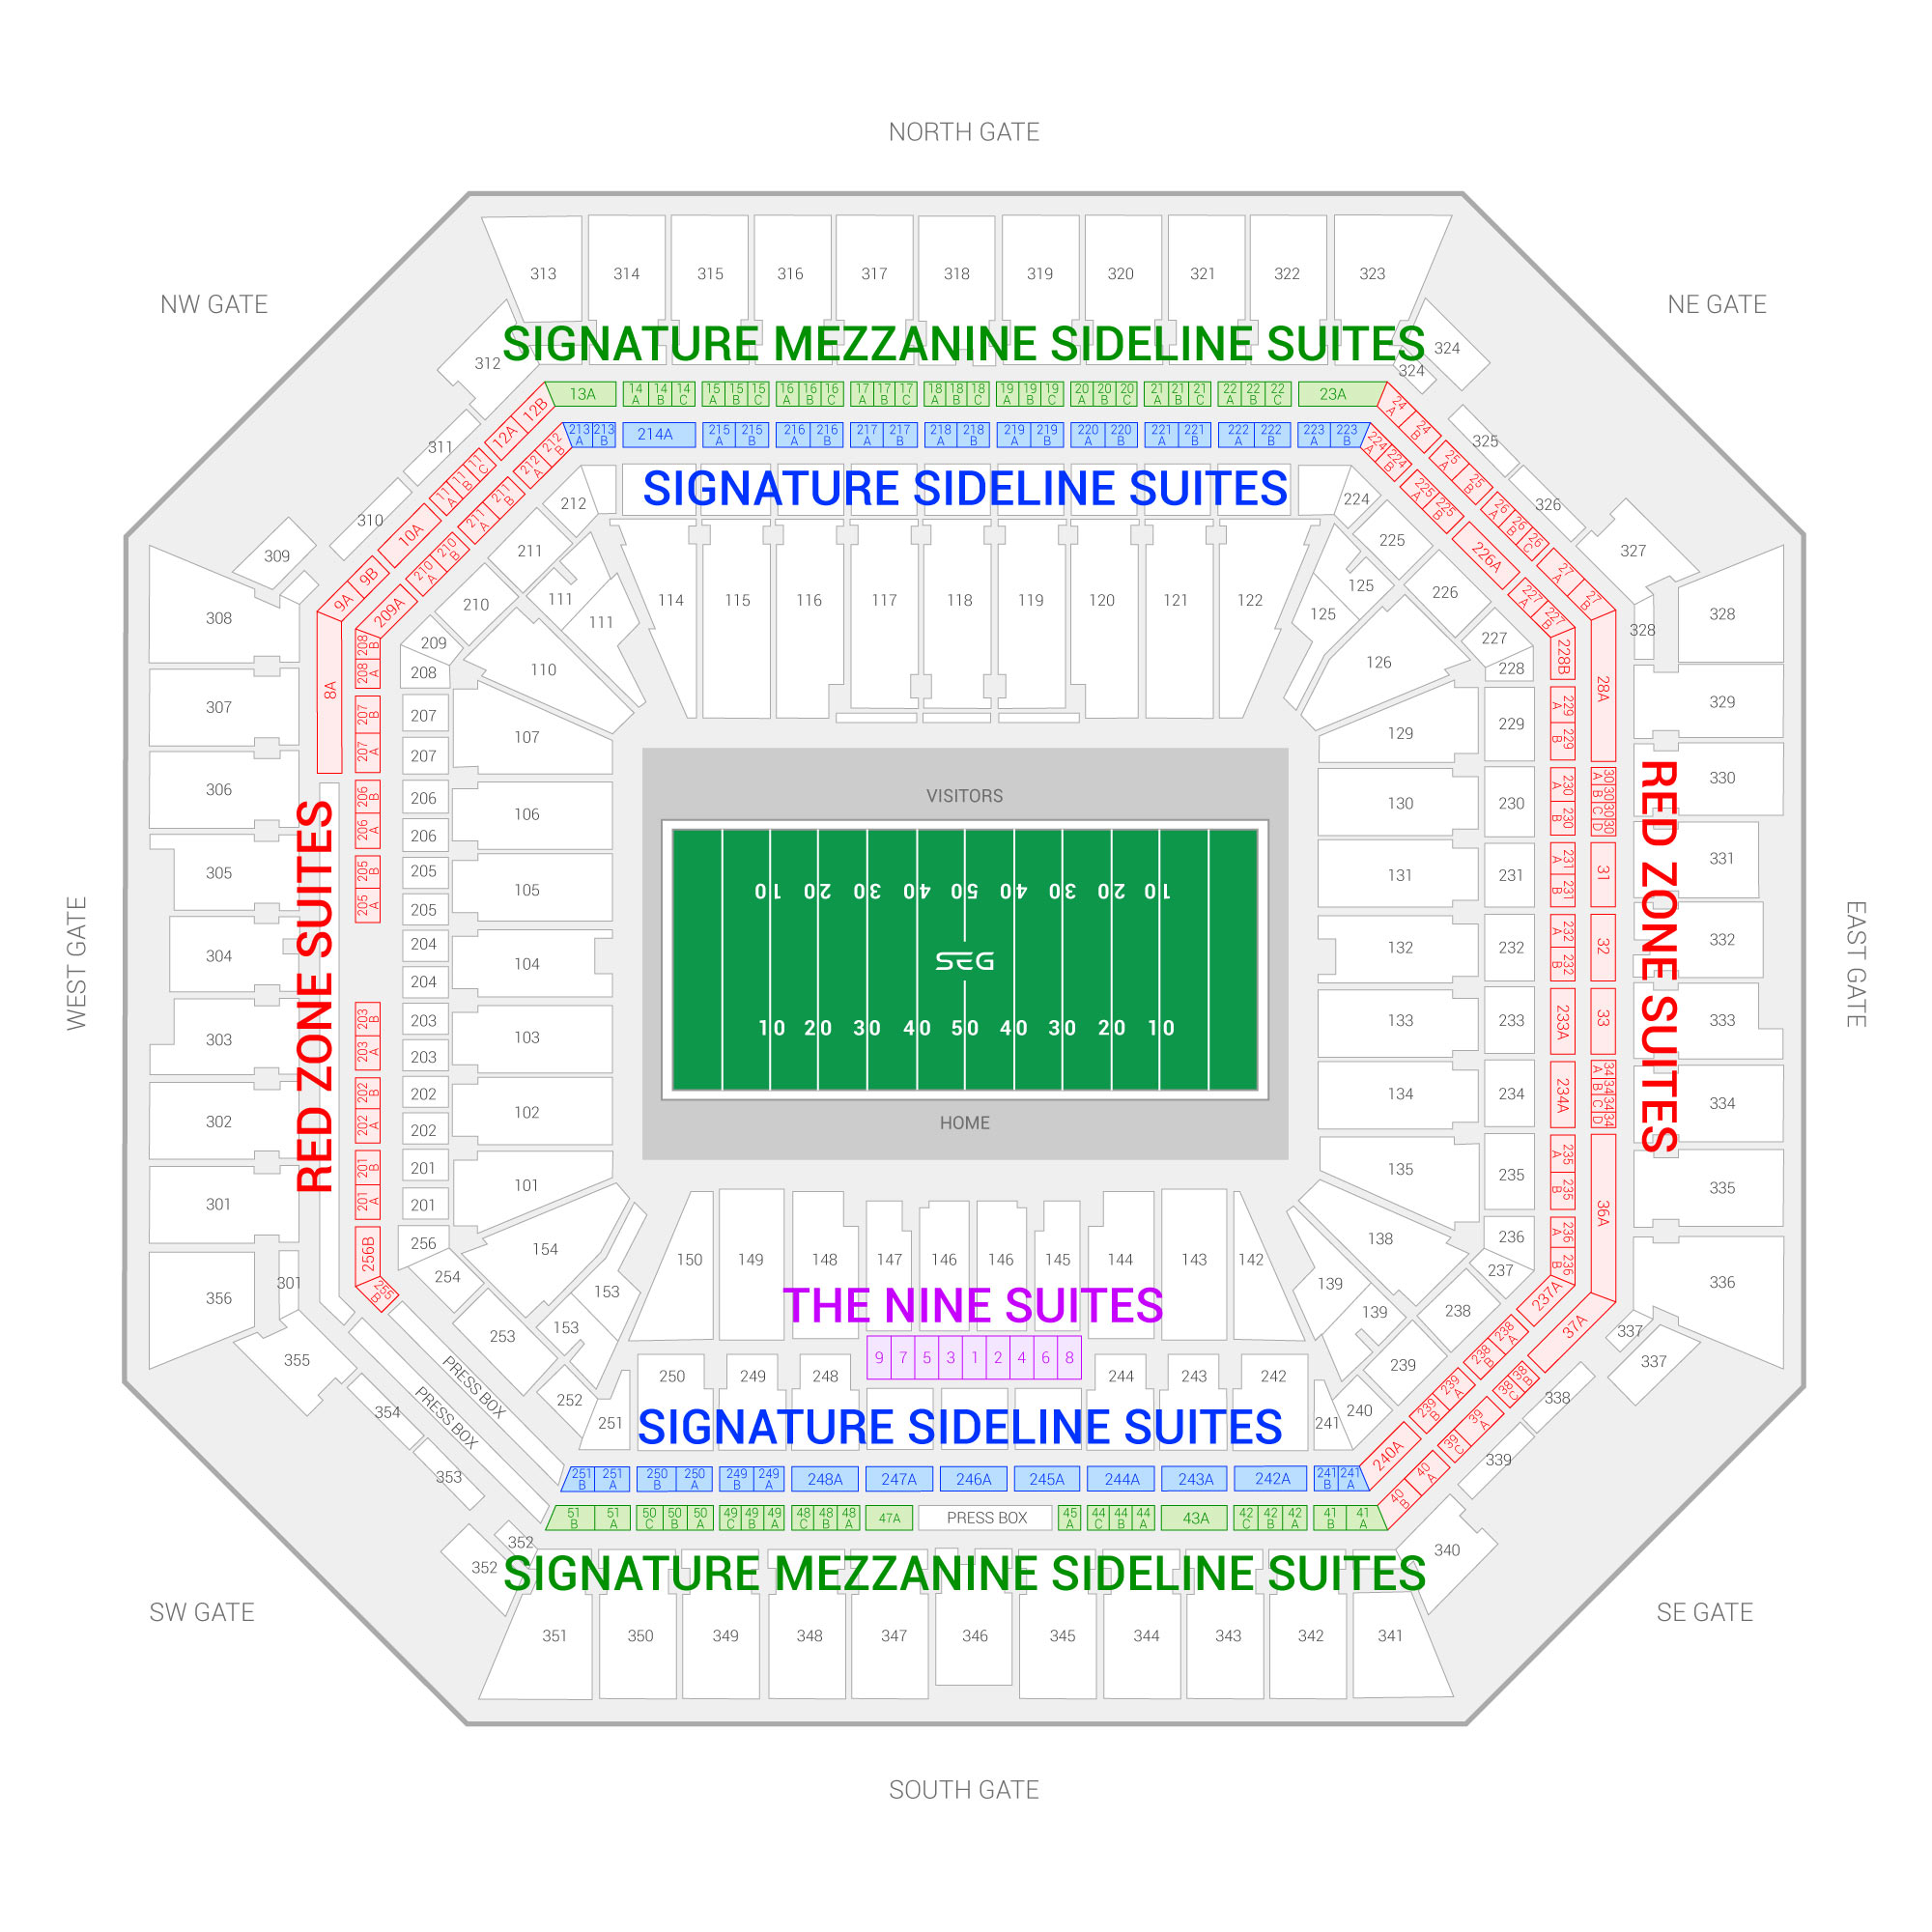 Hard Rock Stadium / Super Bowl LIV Suite Map and Seating Chart